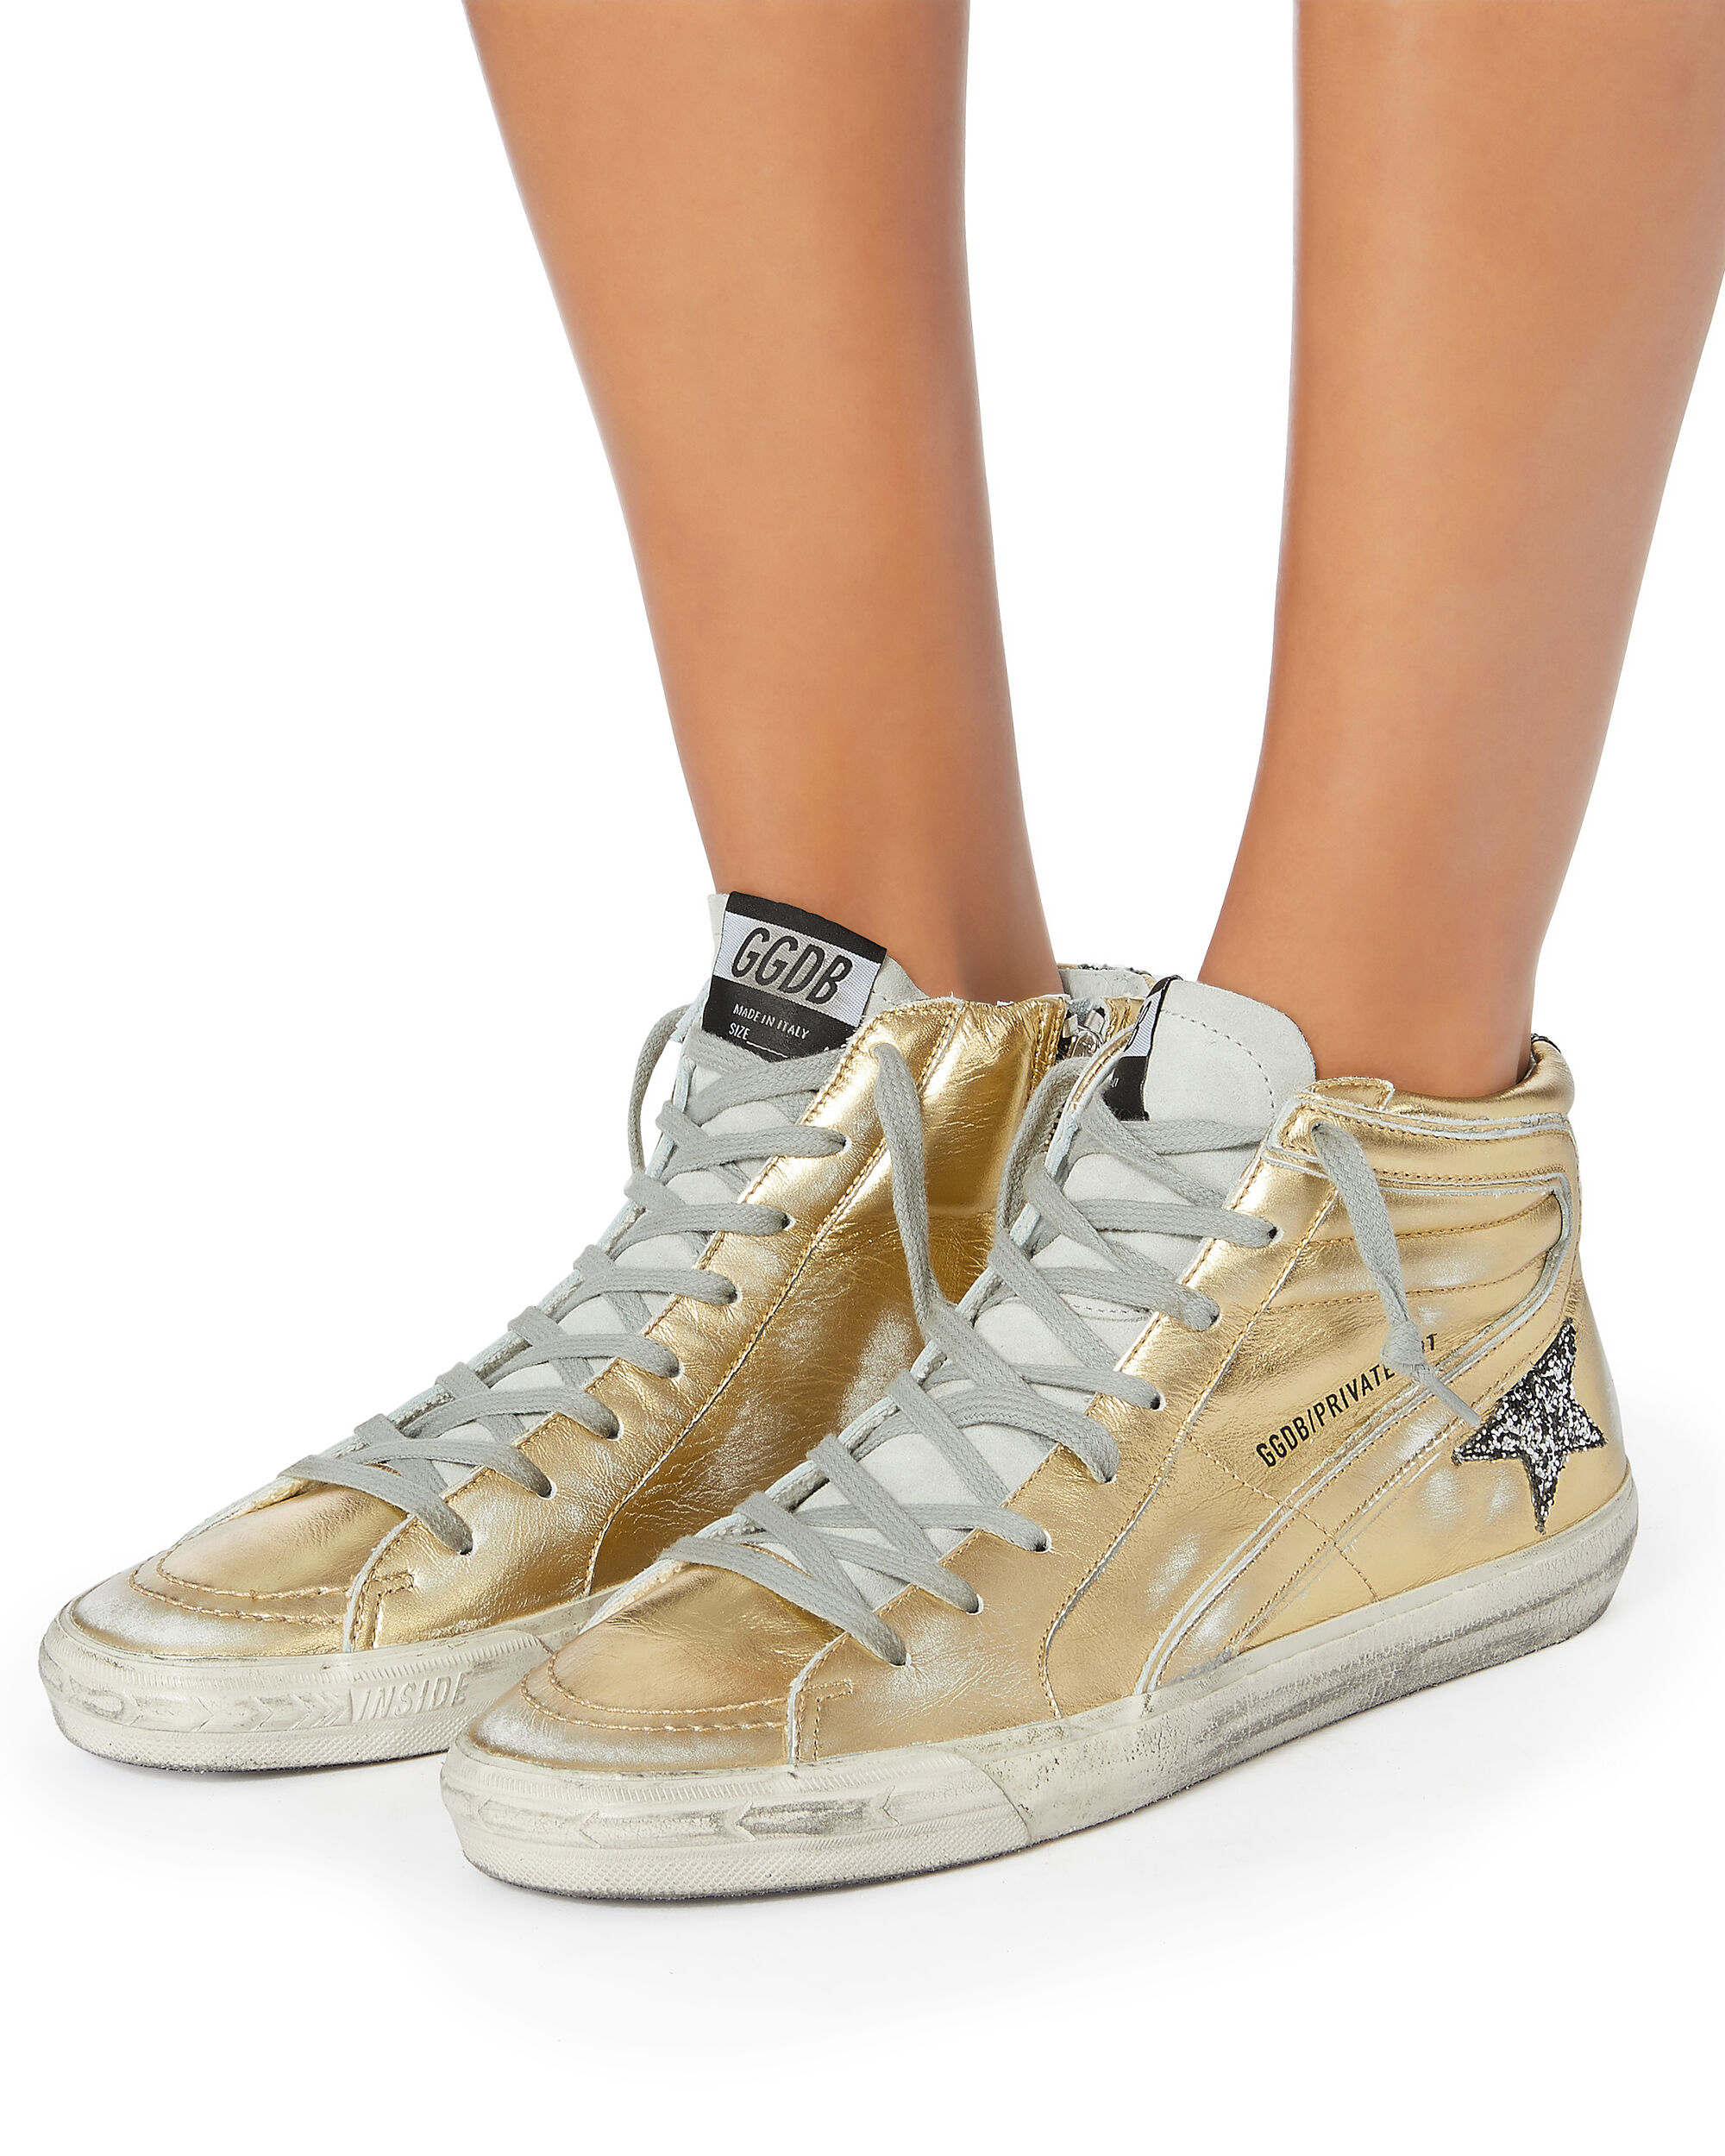 Slide Glitter Star Gold Leather High-Top Sneakers, METALLIC, hi-res